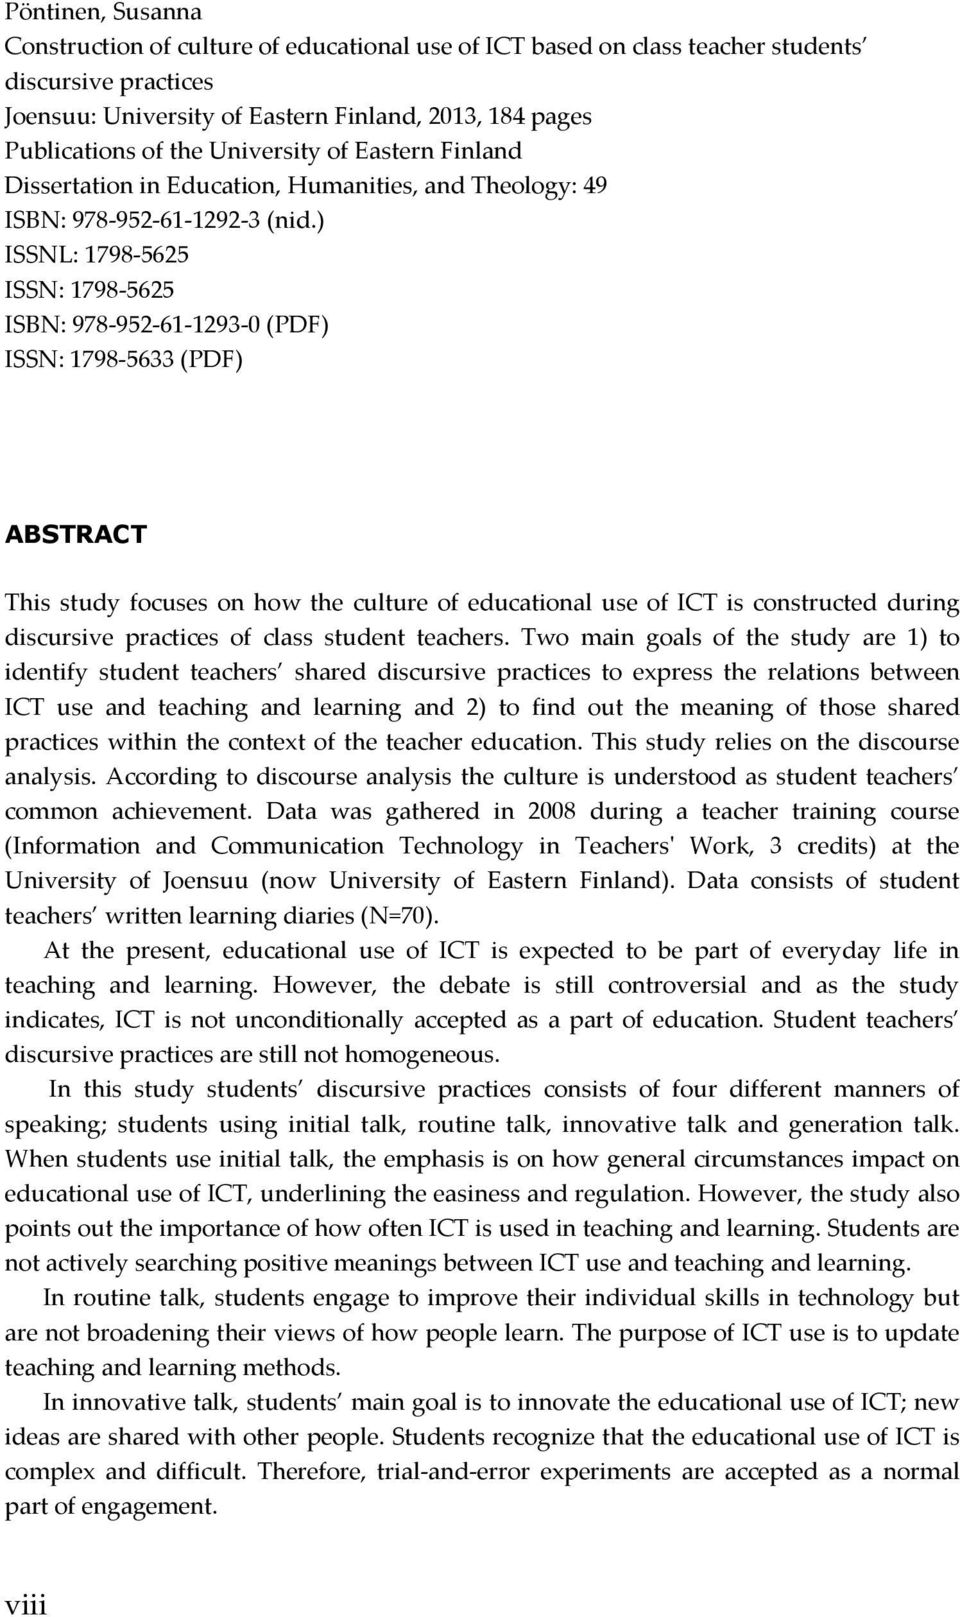 ) ISSNL: 1798-5625 ISSN: 1798-5625 ISBN: 978-952-61-1293-0 (PDF) ISSN: 1798-5633 (PDF) ABSTRACT This study focuses on how the culture of educational use of ICT is constructed during discursive